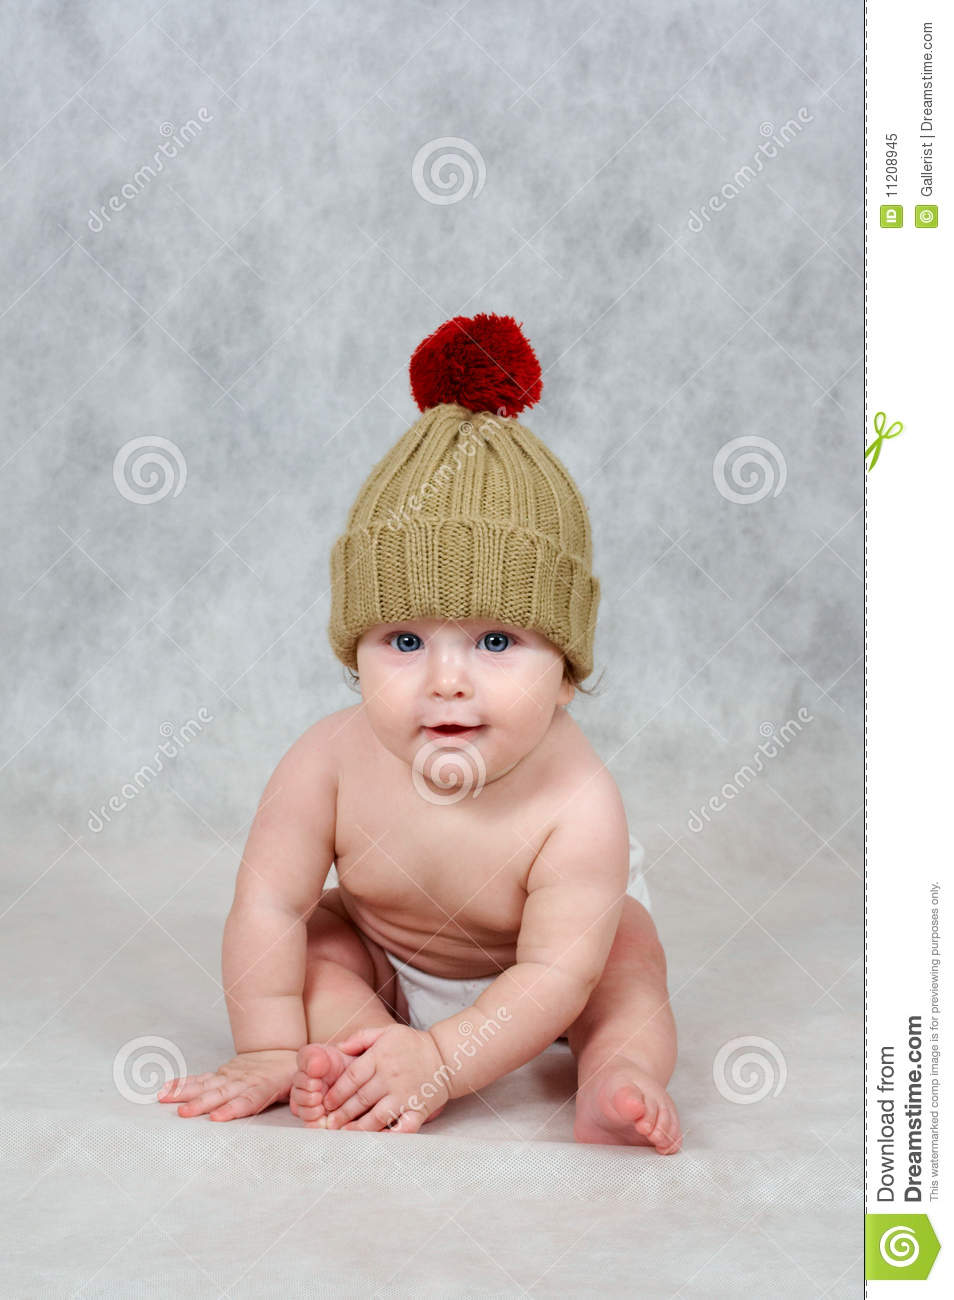 58c3f3fe52e 6 months old baby boy stock image. Image of winter